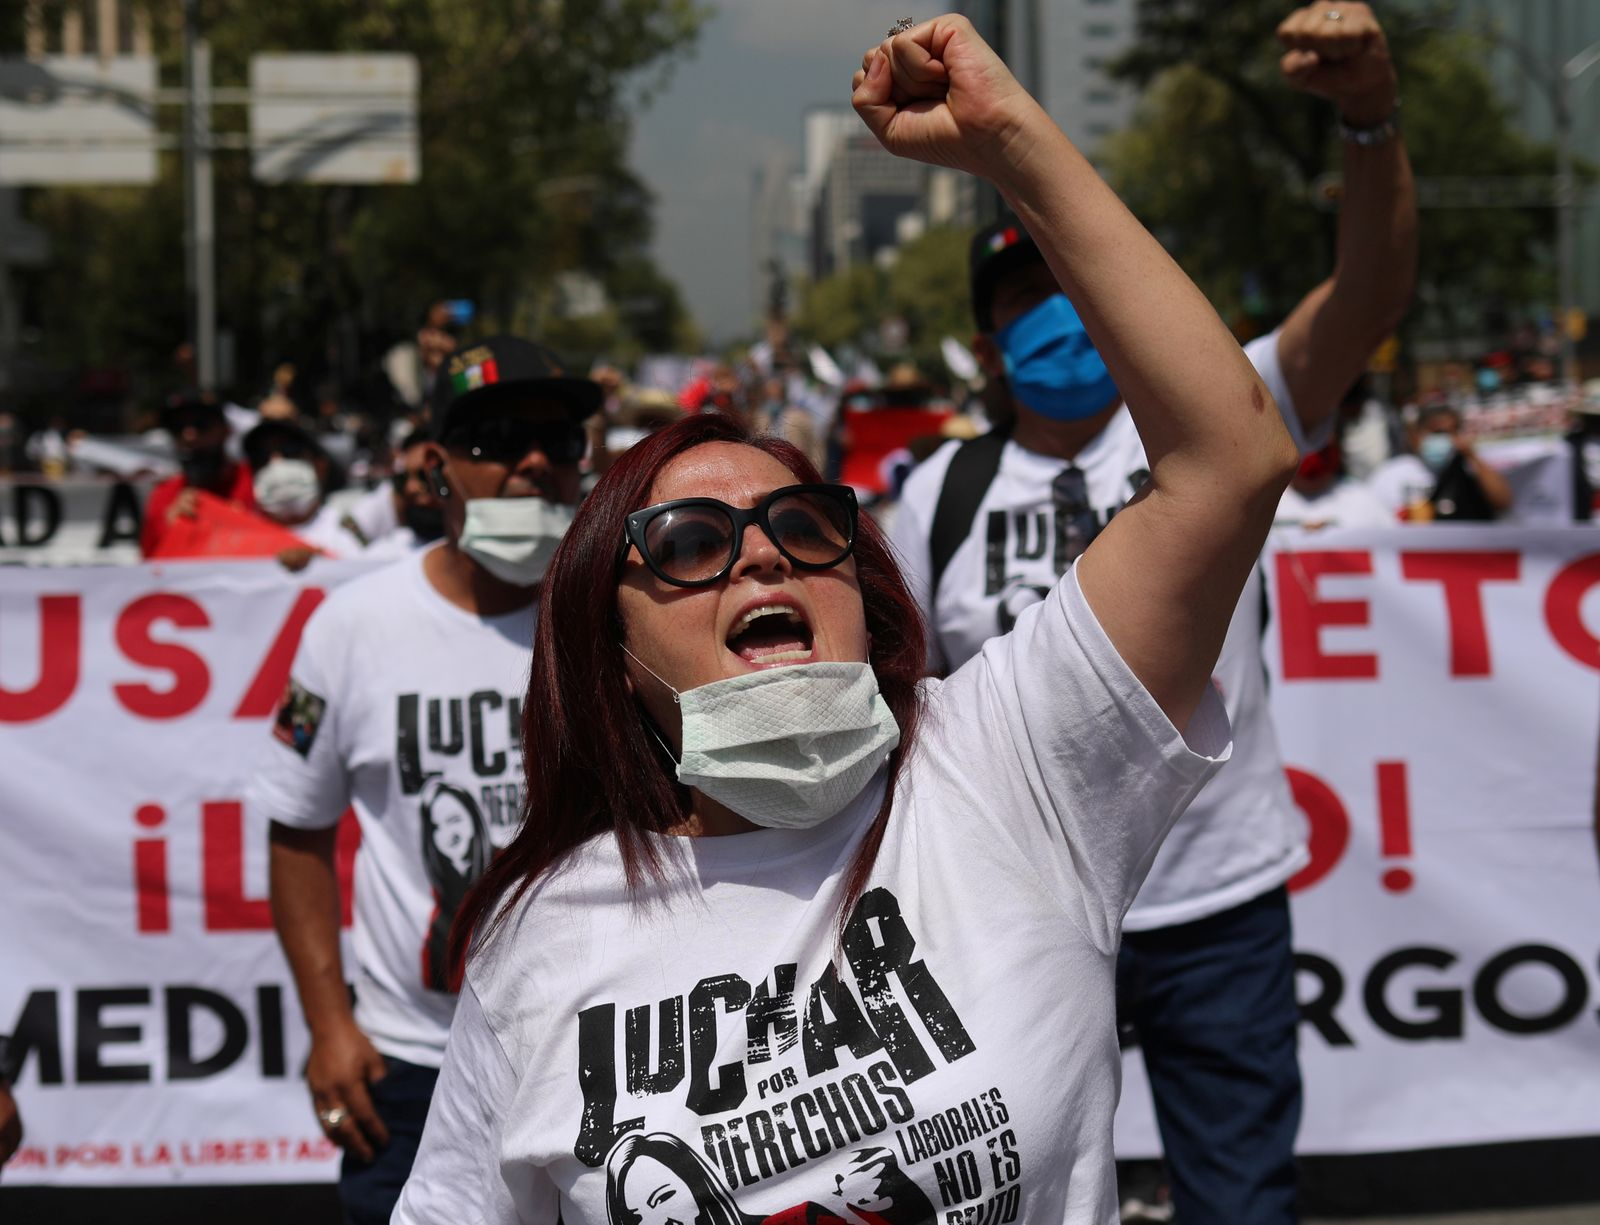 Mexican labor lawyer Susana Prieto leads a demonstration with supporters and workers along the streets in Mexico City